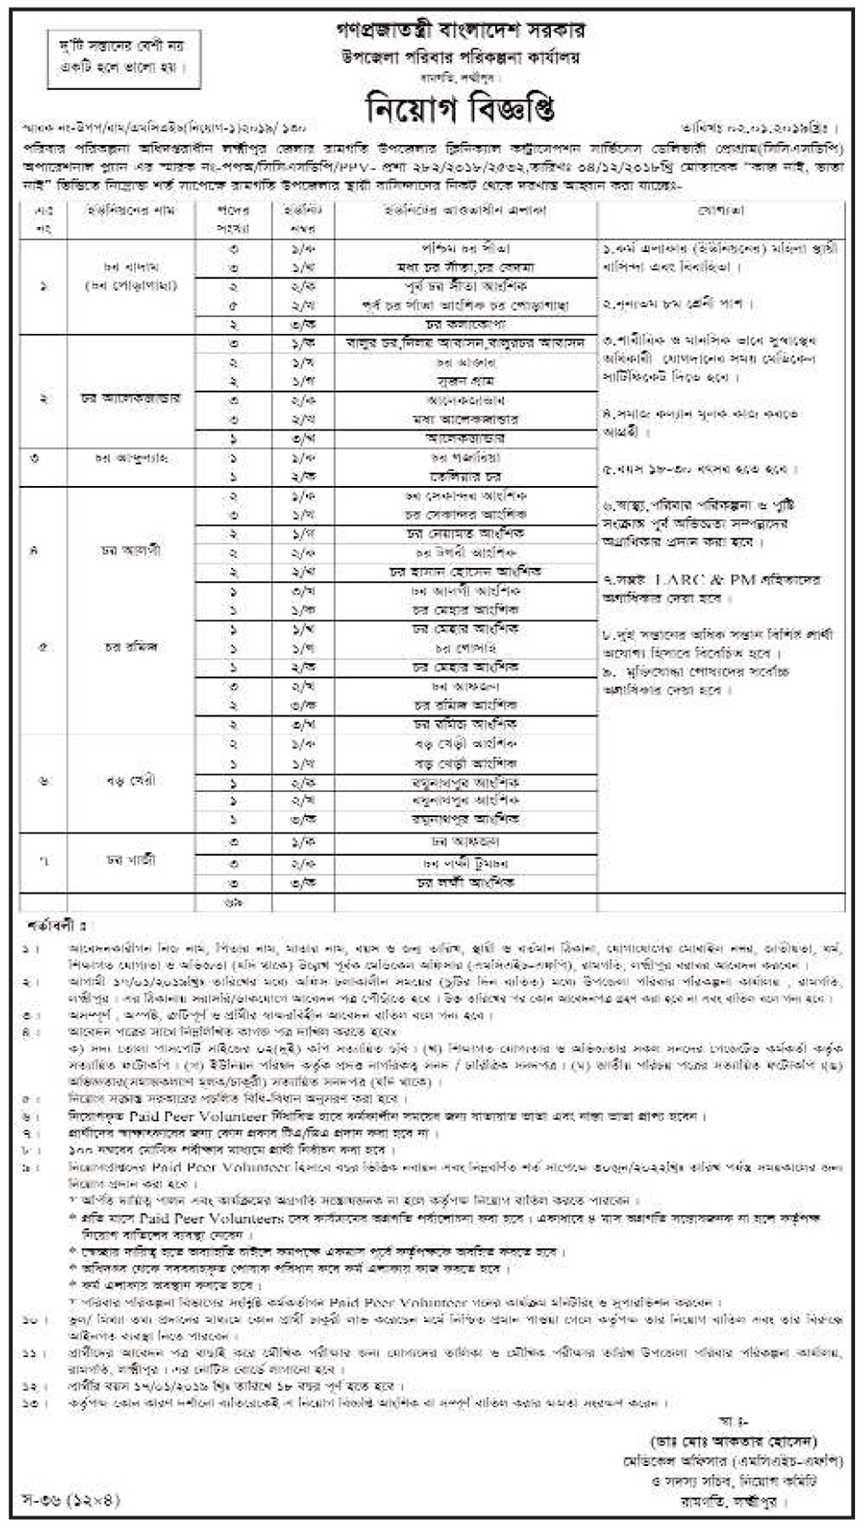 Department of Family Planning Job Circular 2019